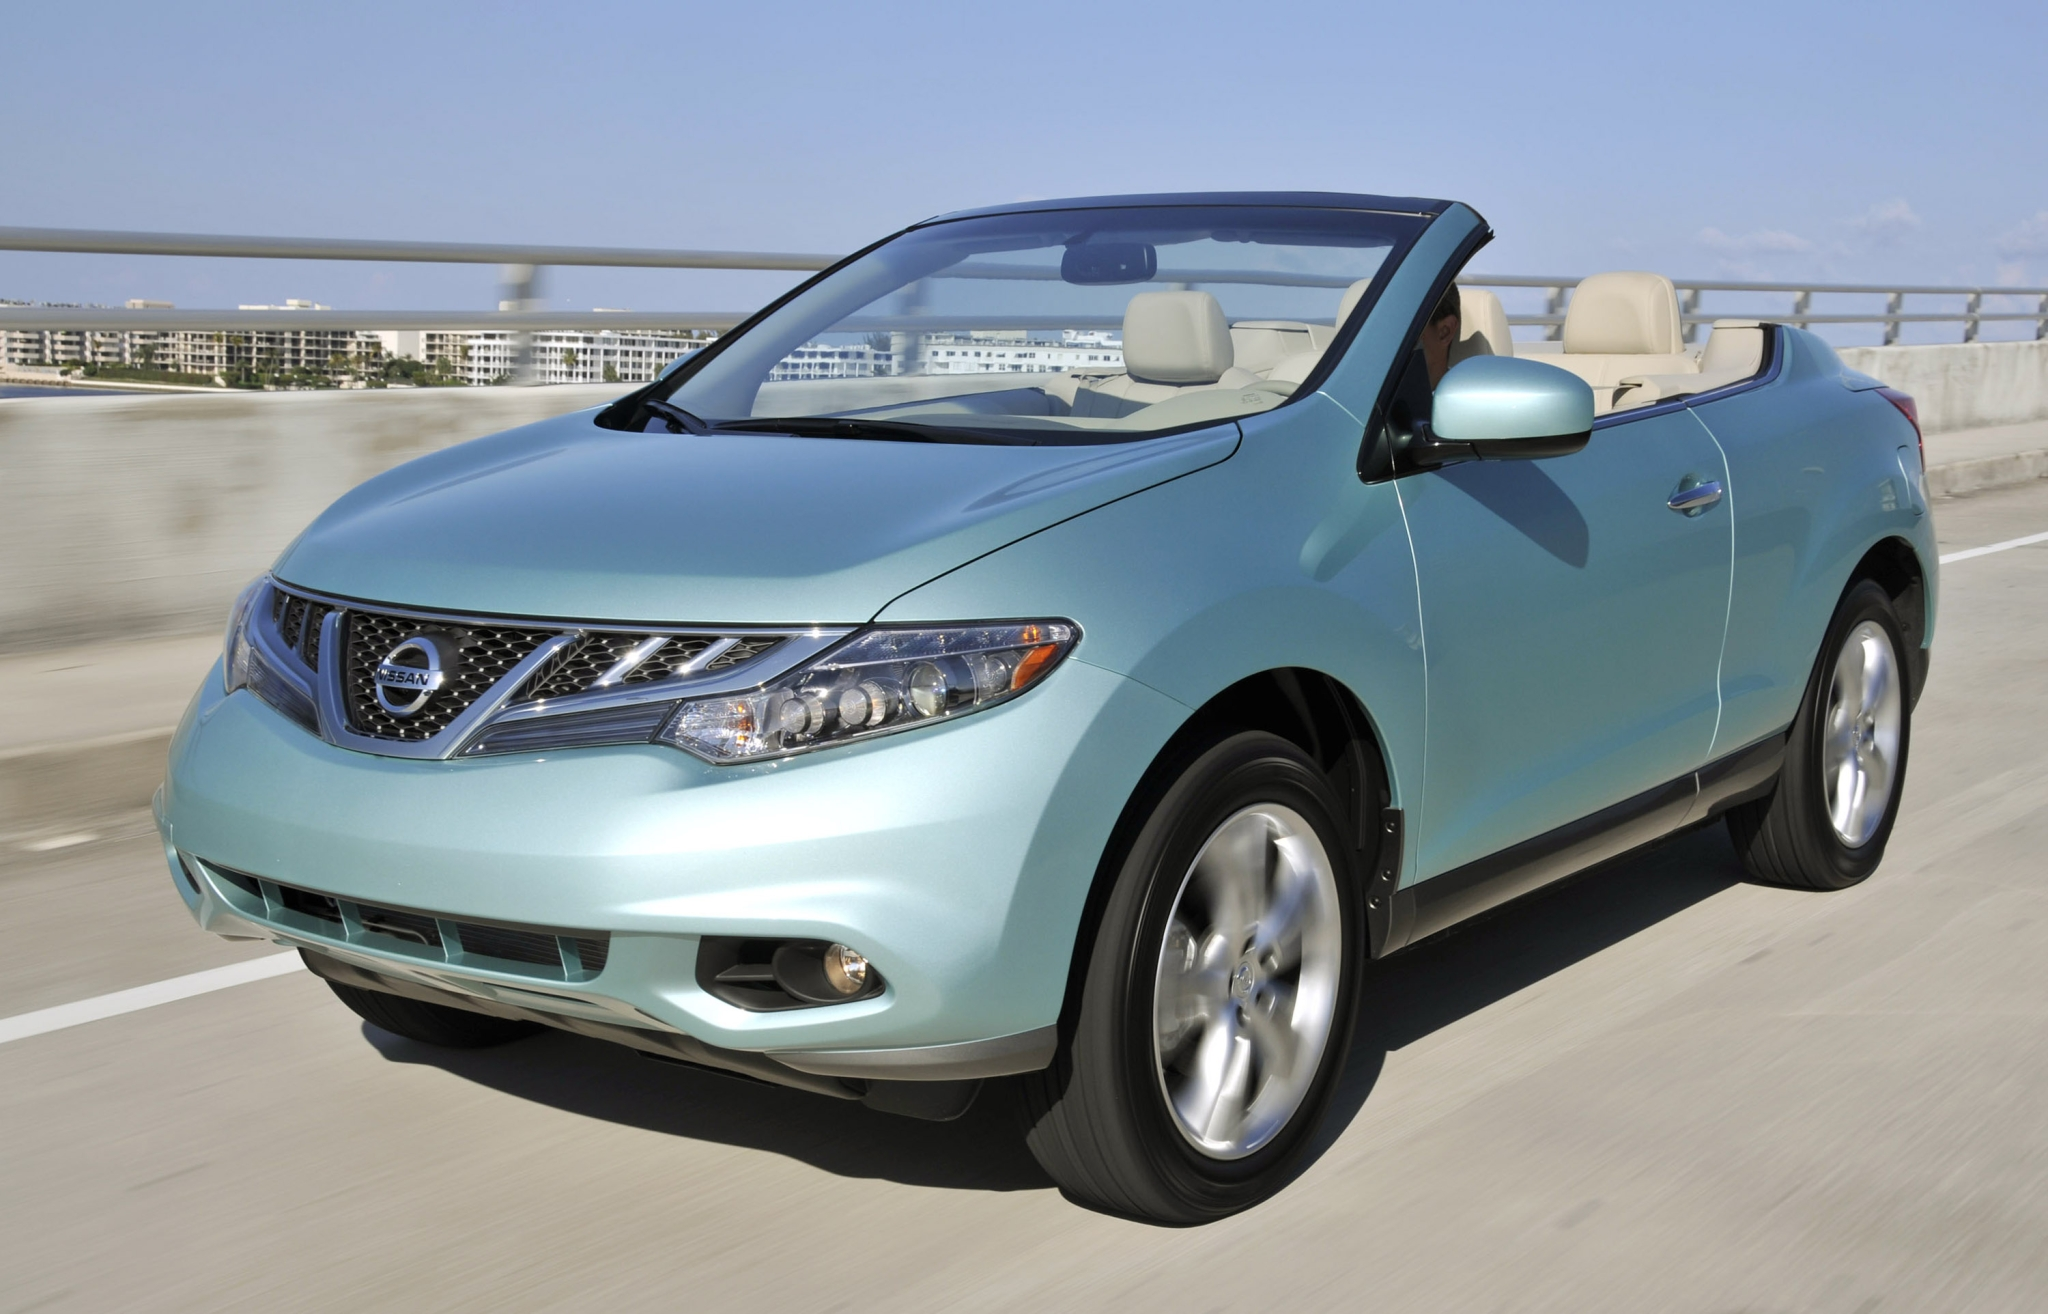 reasonable up nissan starts a stepping start will to sale recently about version murano at may the announced set truth healthy muranocctopup convertible cars crosscabriolet but back you for